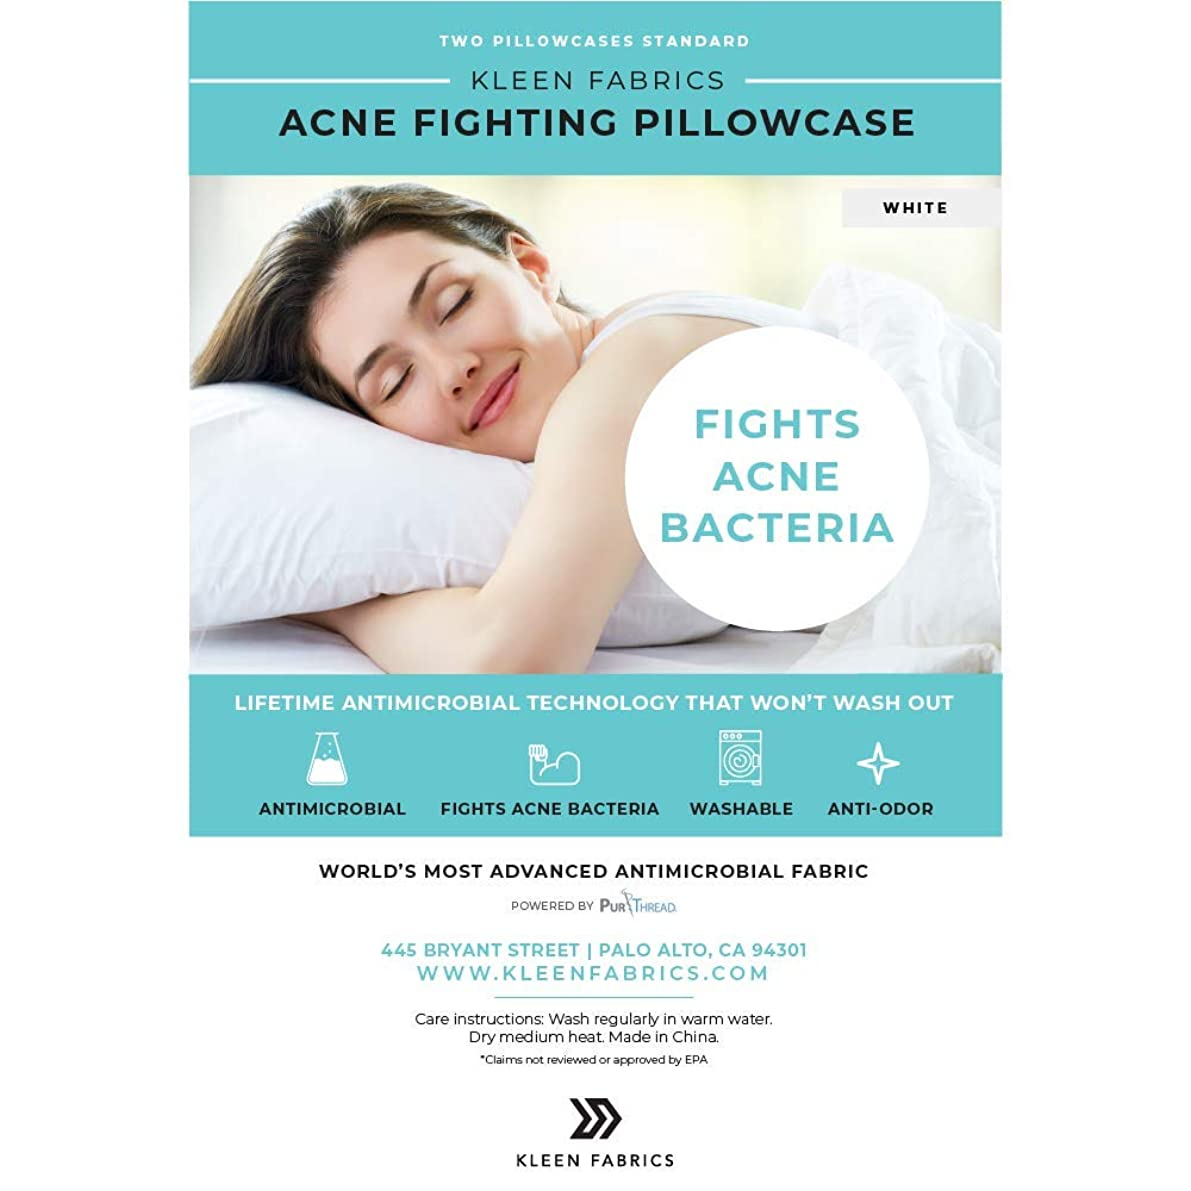 Kleen Fabrics Acne Fighting Antimicrobial Pillowcase with PurThread Silver Technology, White, 2 Standard Pillowcases